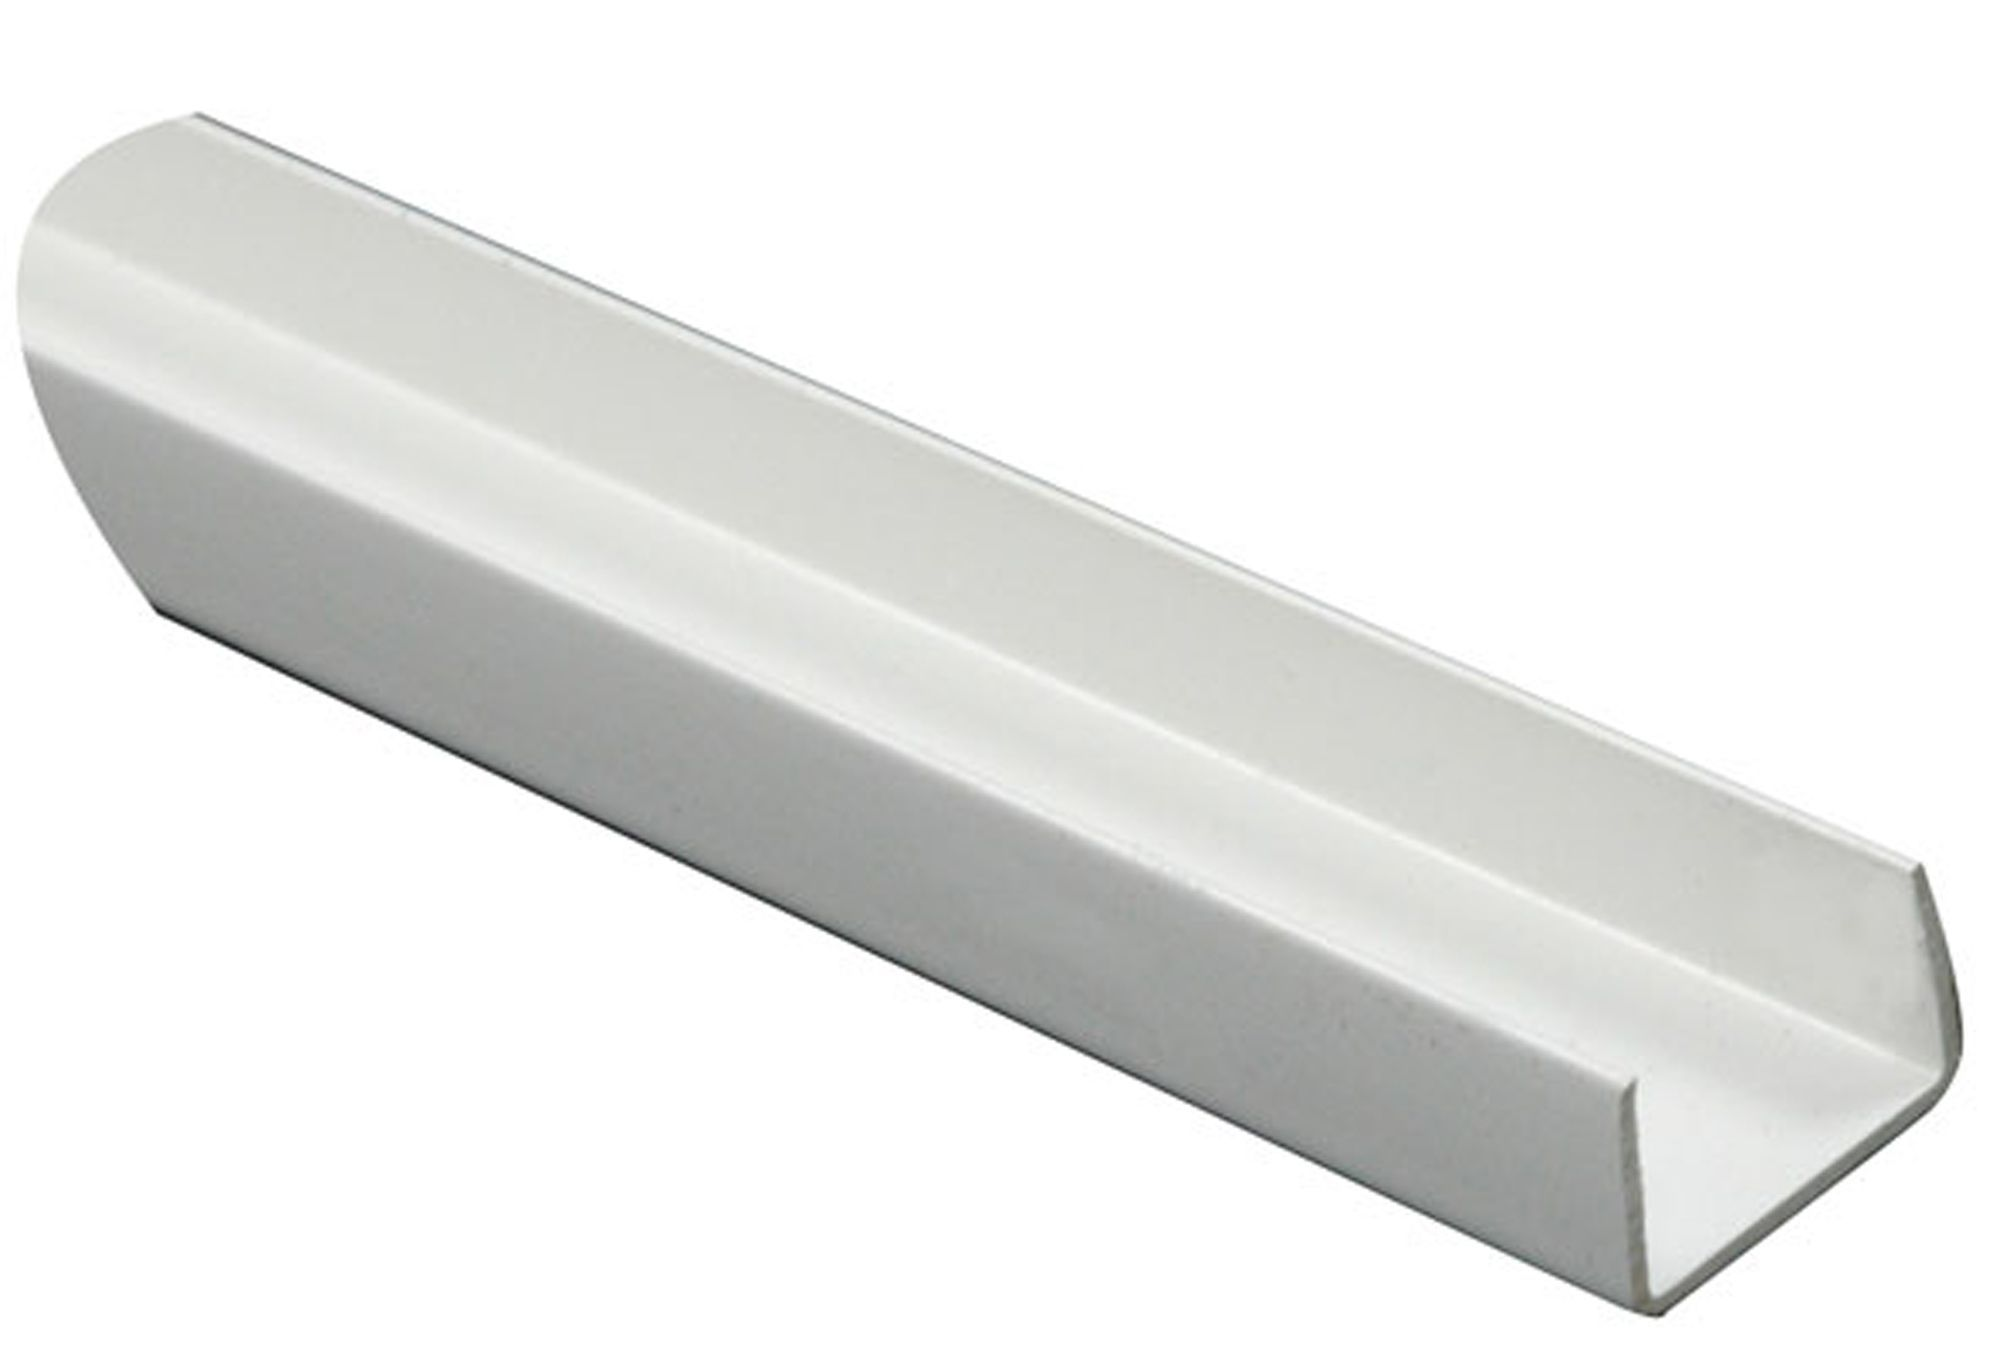 White Pvc U Profile H 10mm W 18mm L 1m Departments